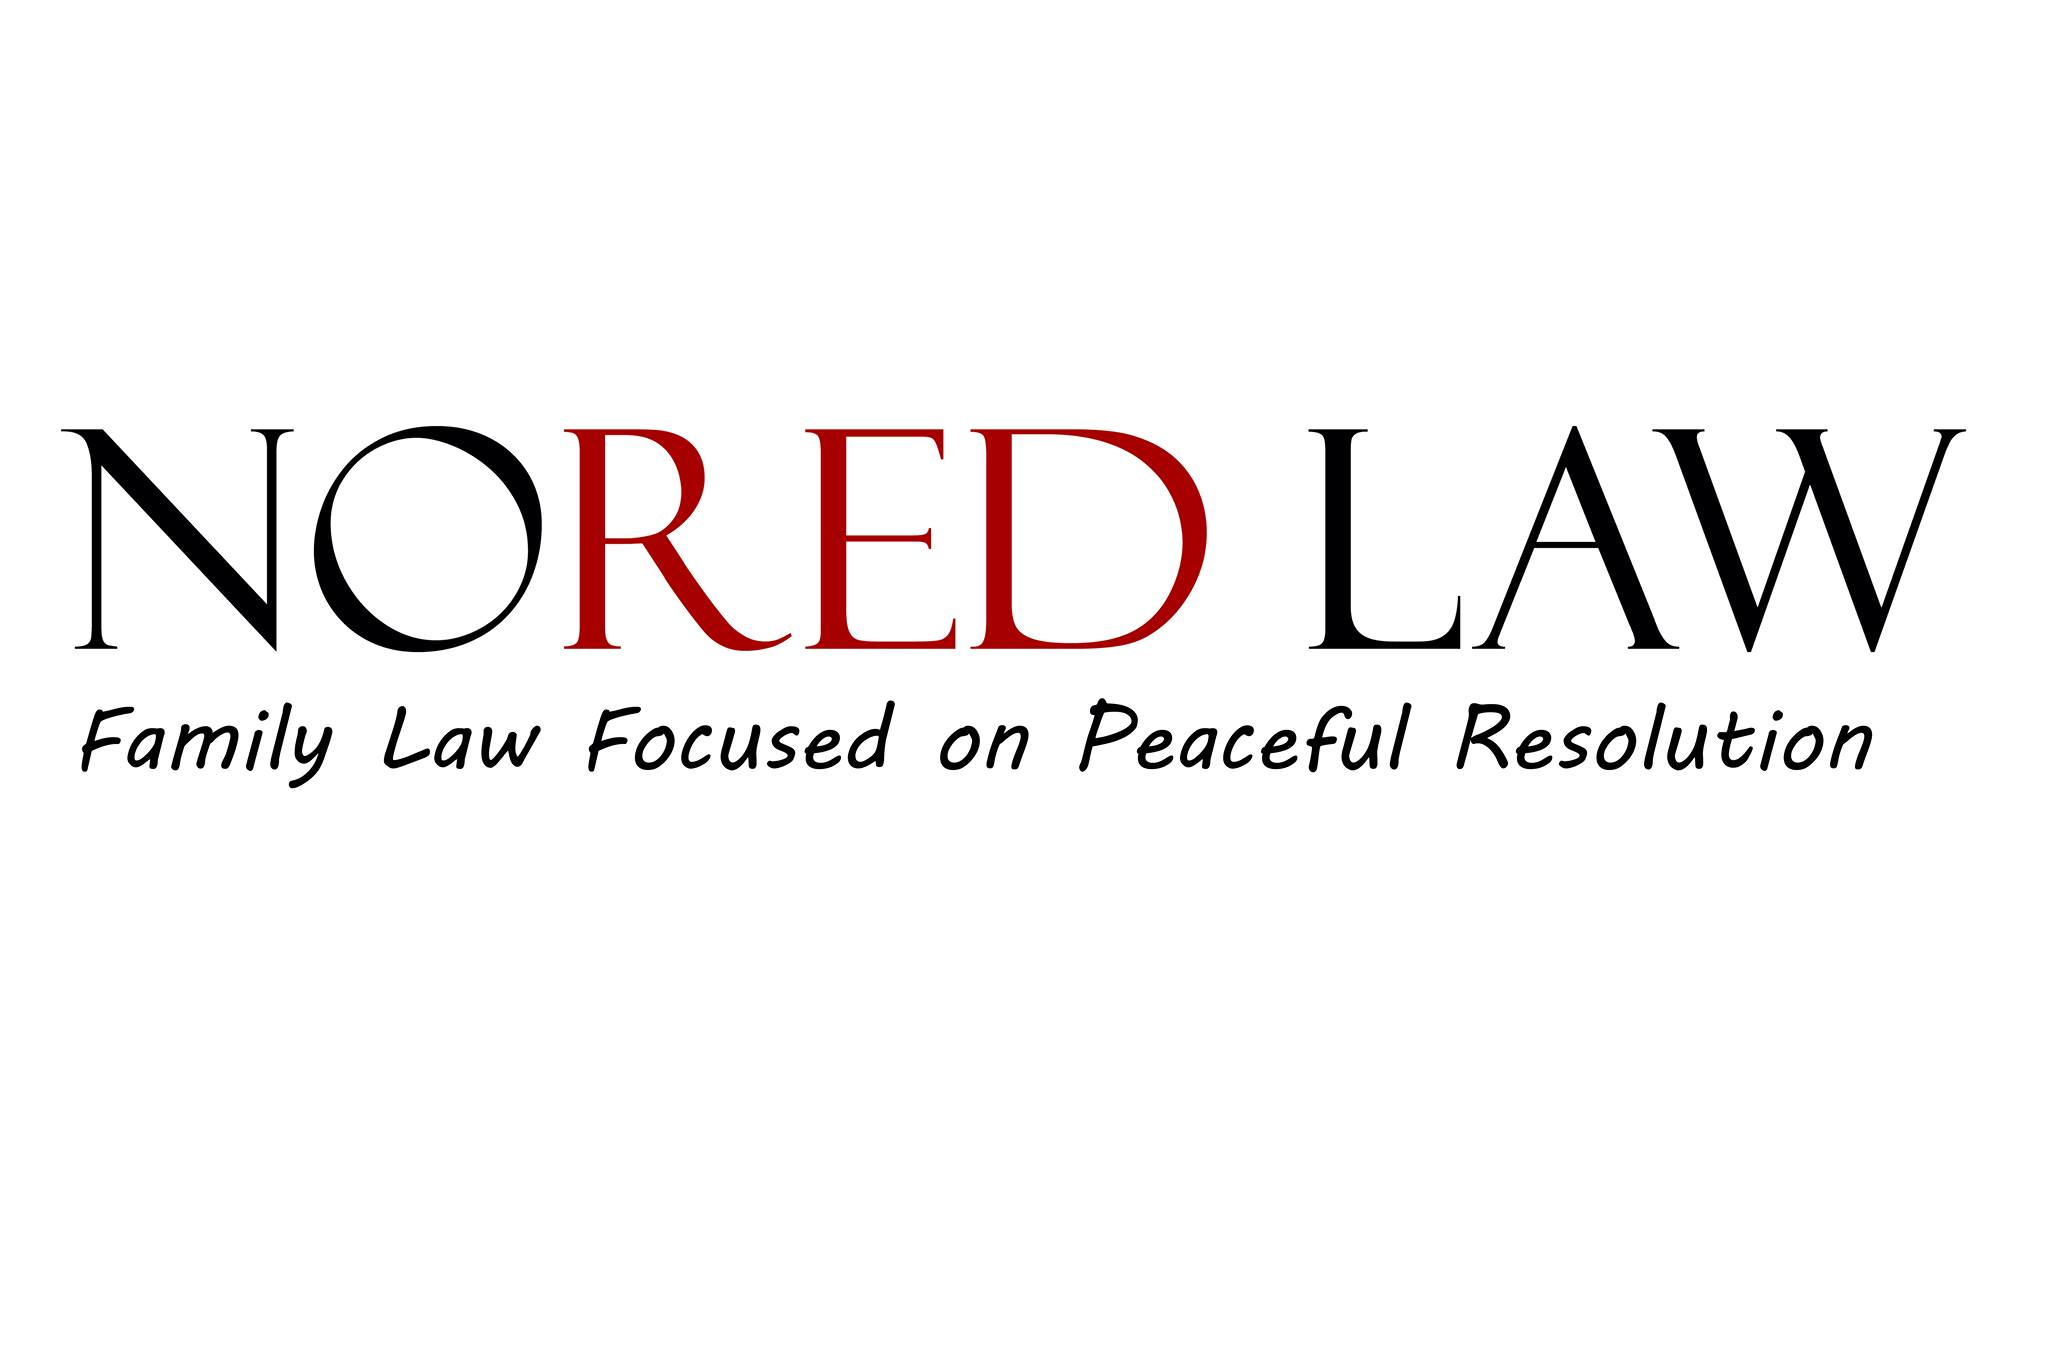 Nored Law | Lawyers at 15 S Grady Way - Renton WA - Reviews - Photos - Phone Number